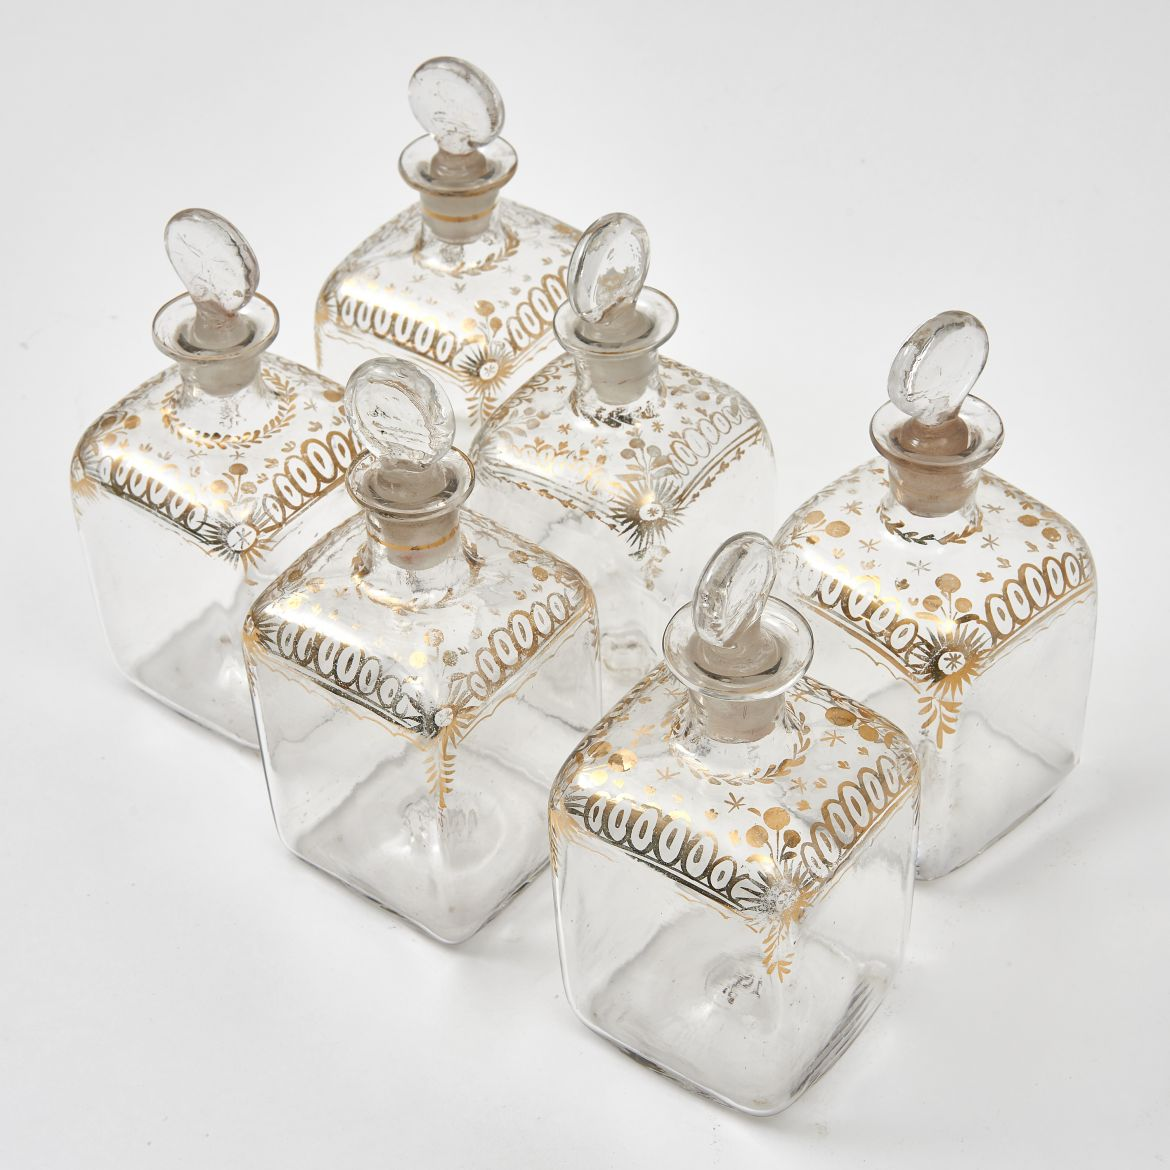 Dutch Scent Bottles